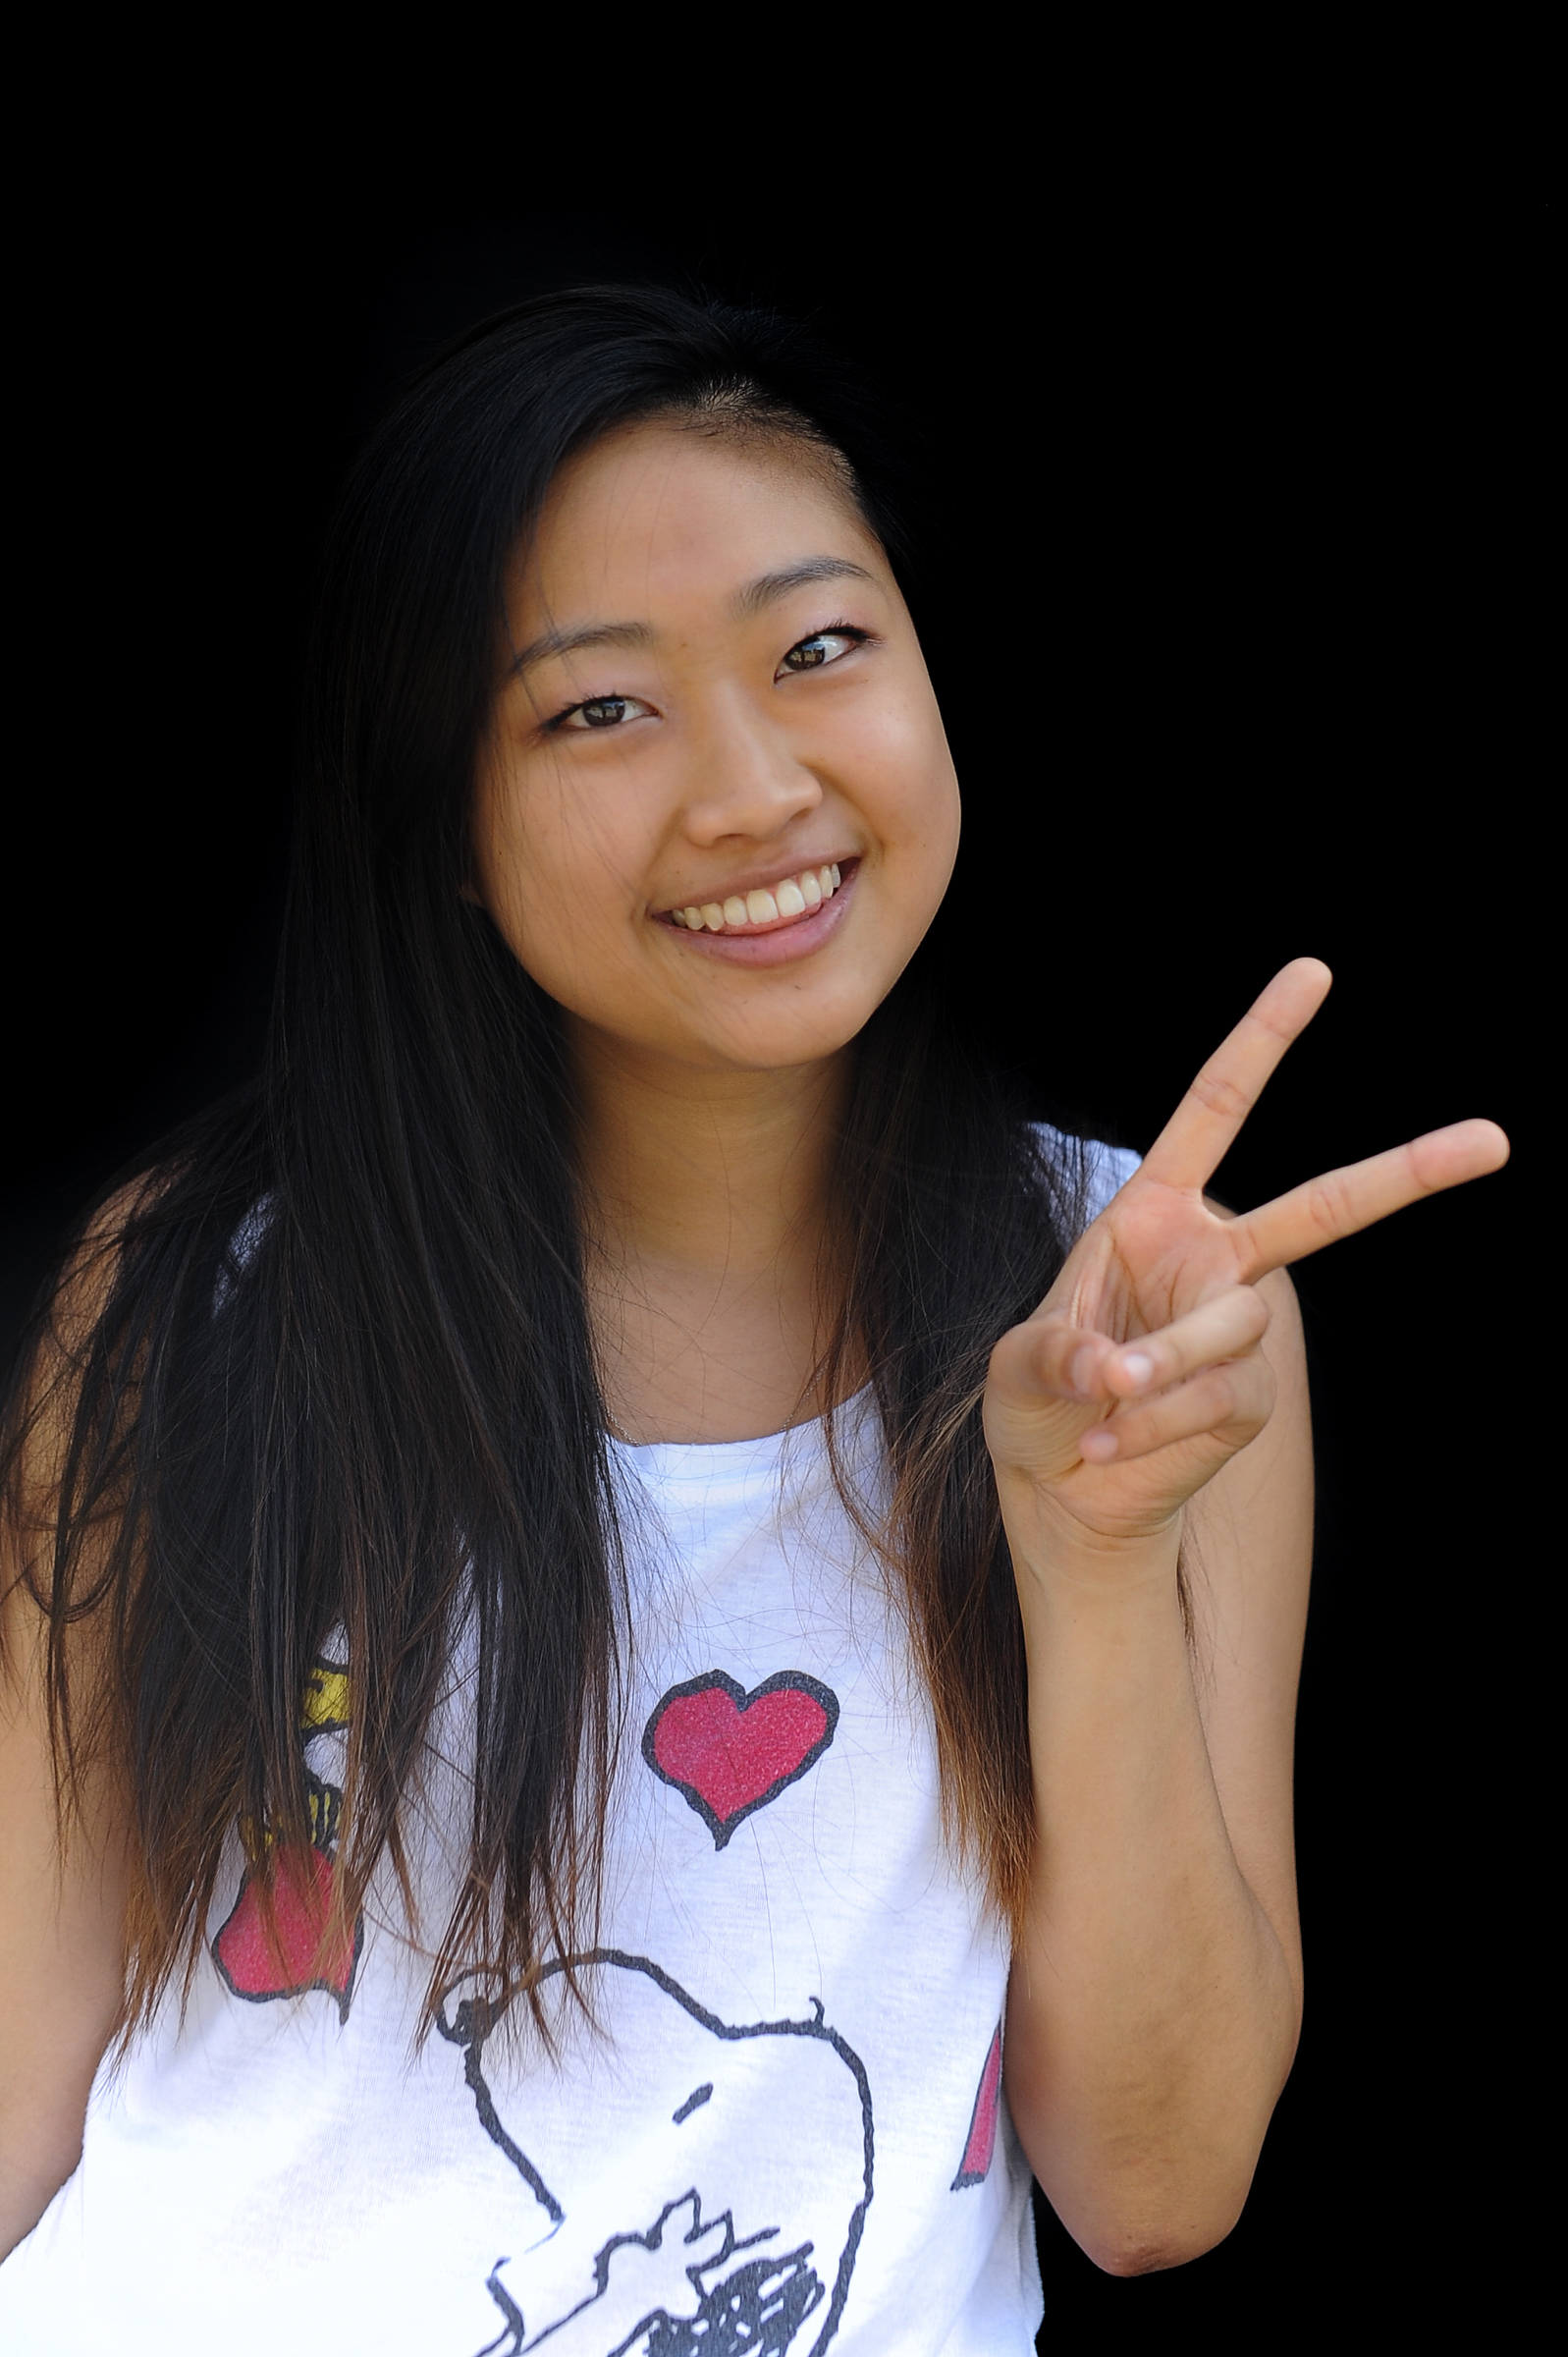 Name: Jennie Kim